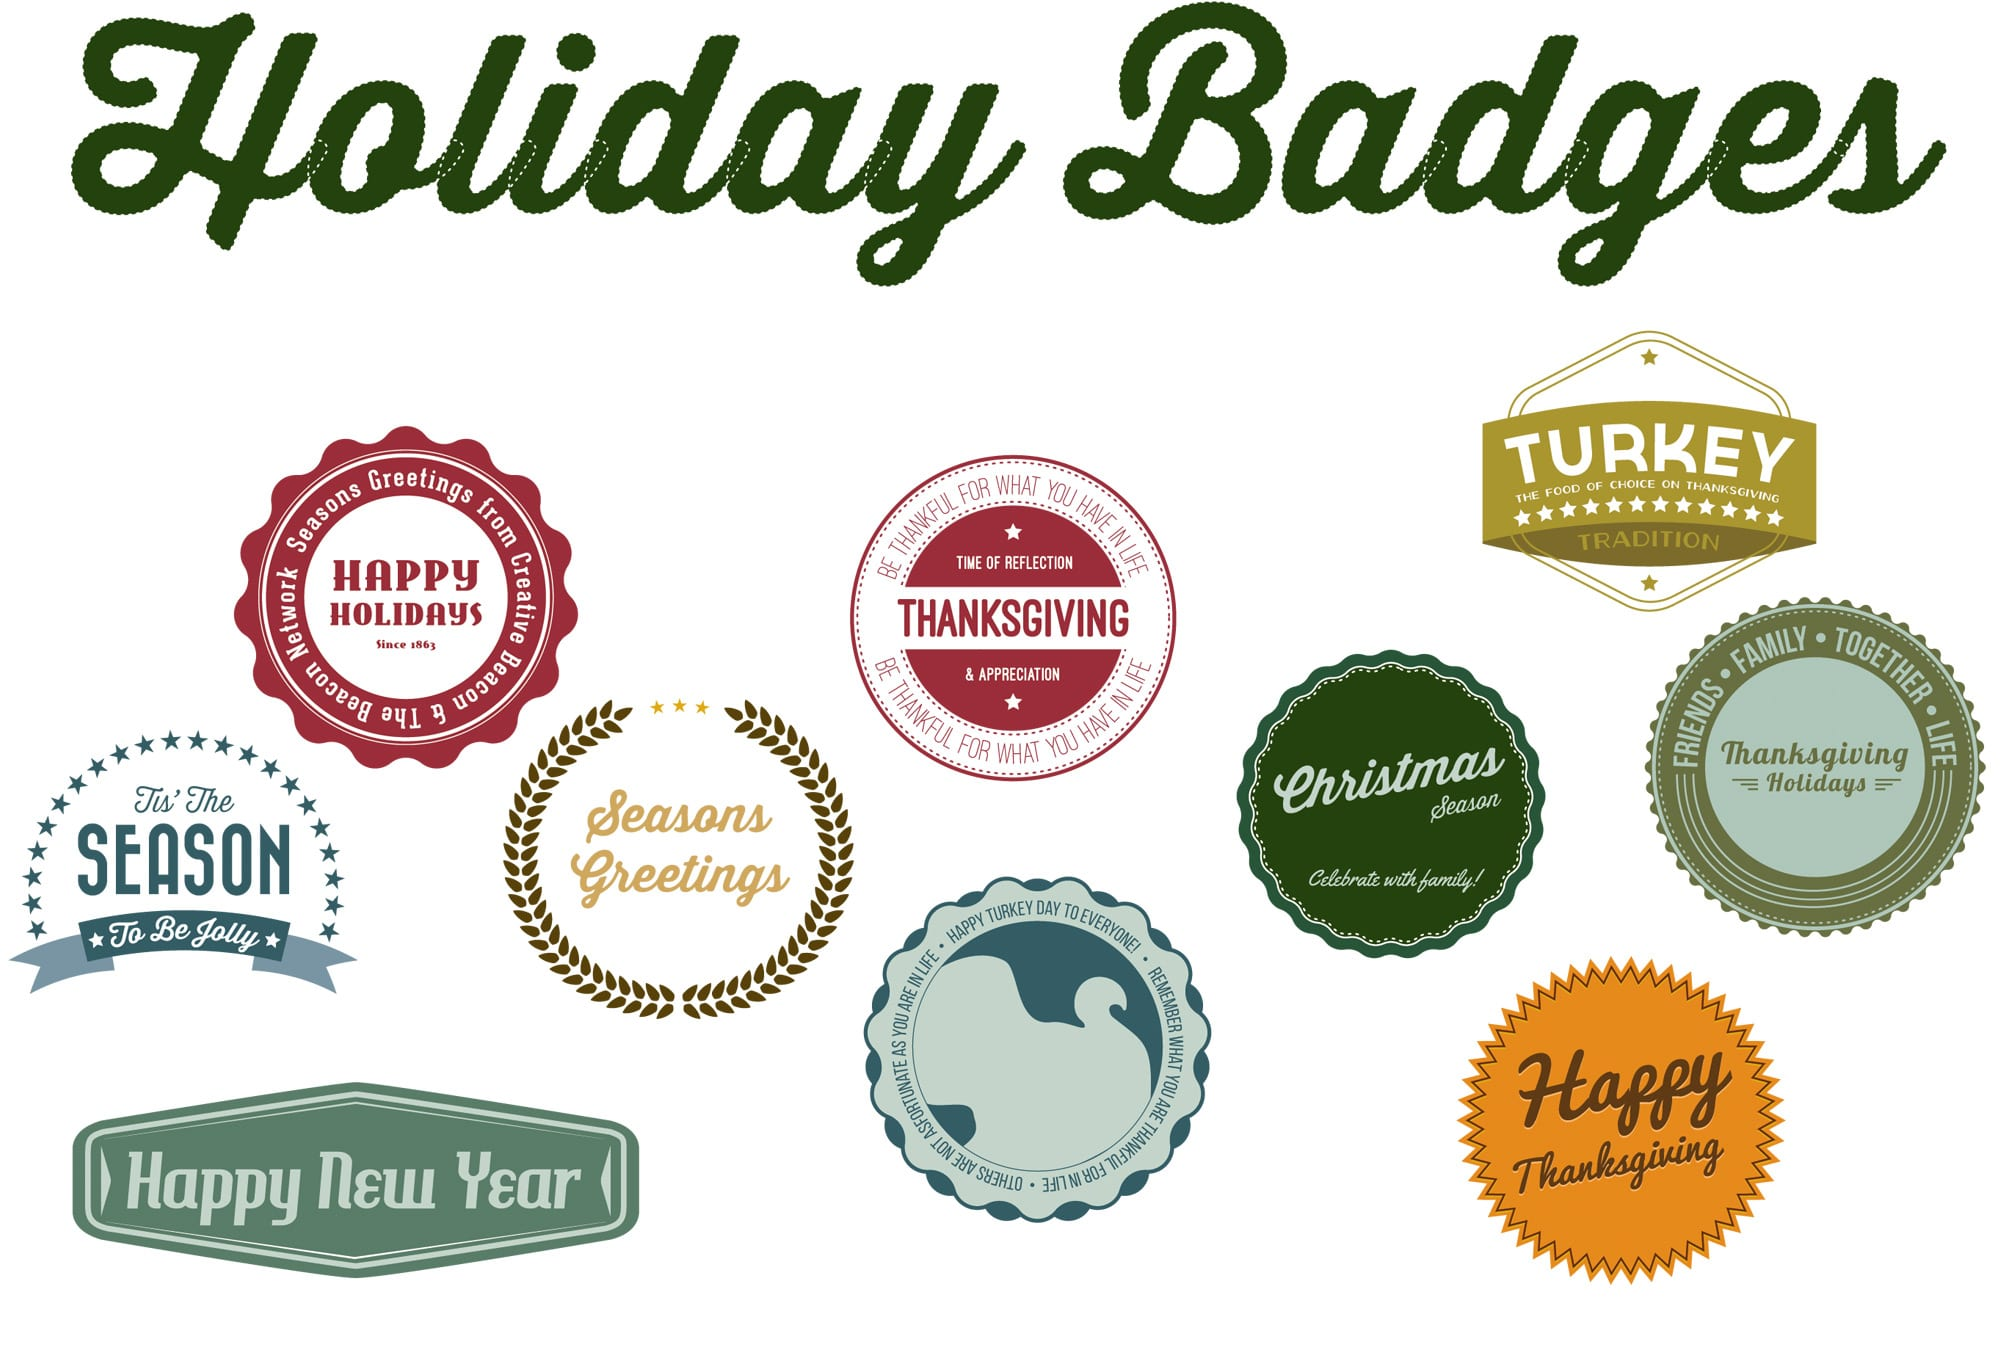 Free Vector Holiday Season Badges